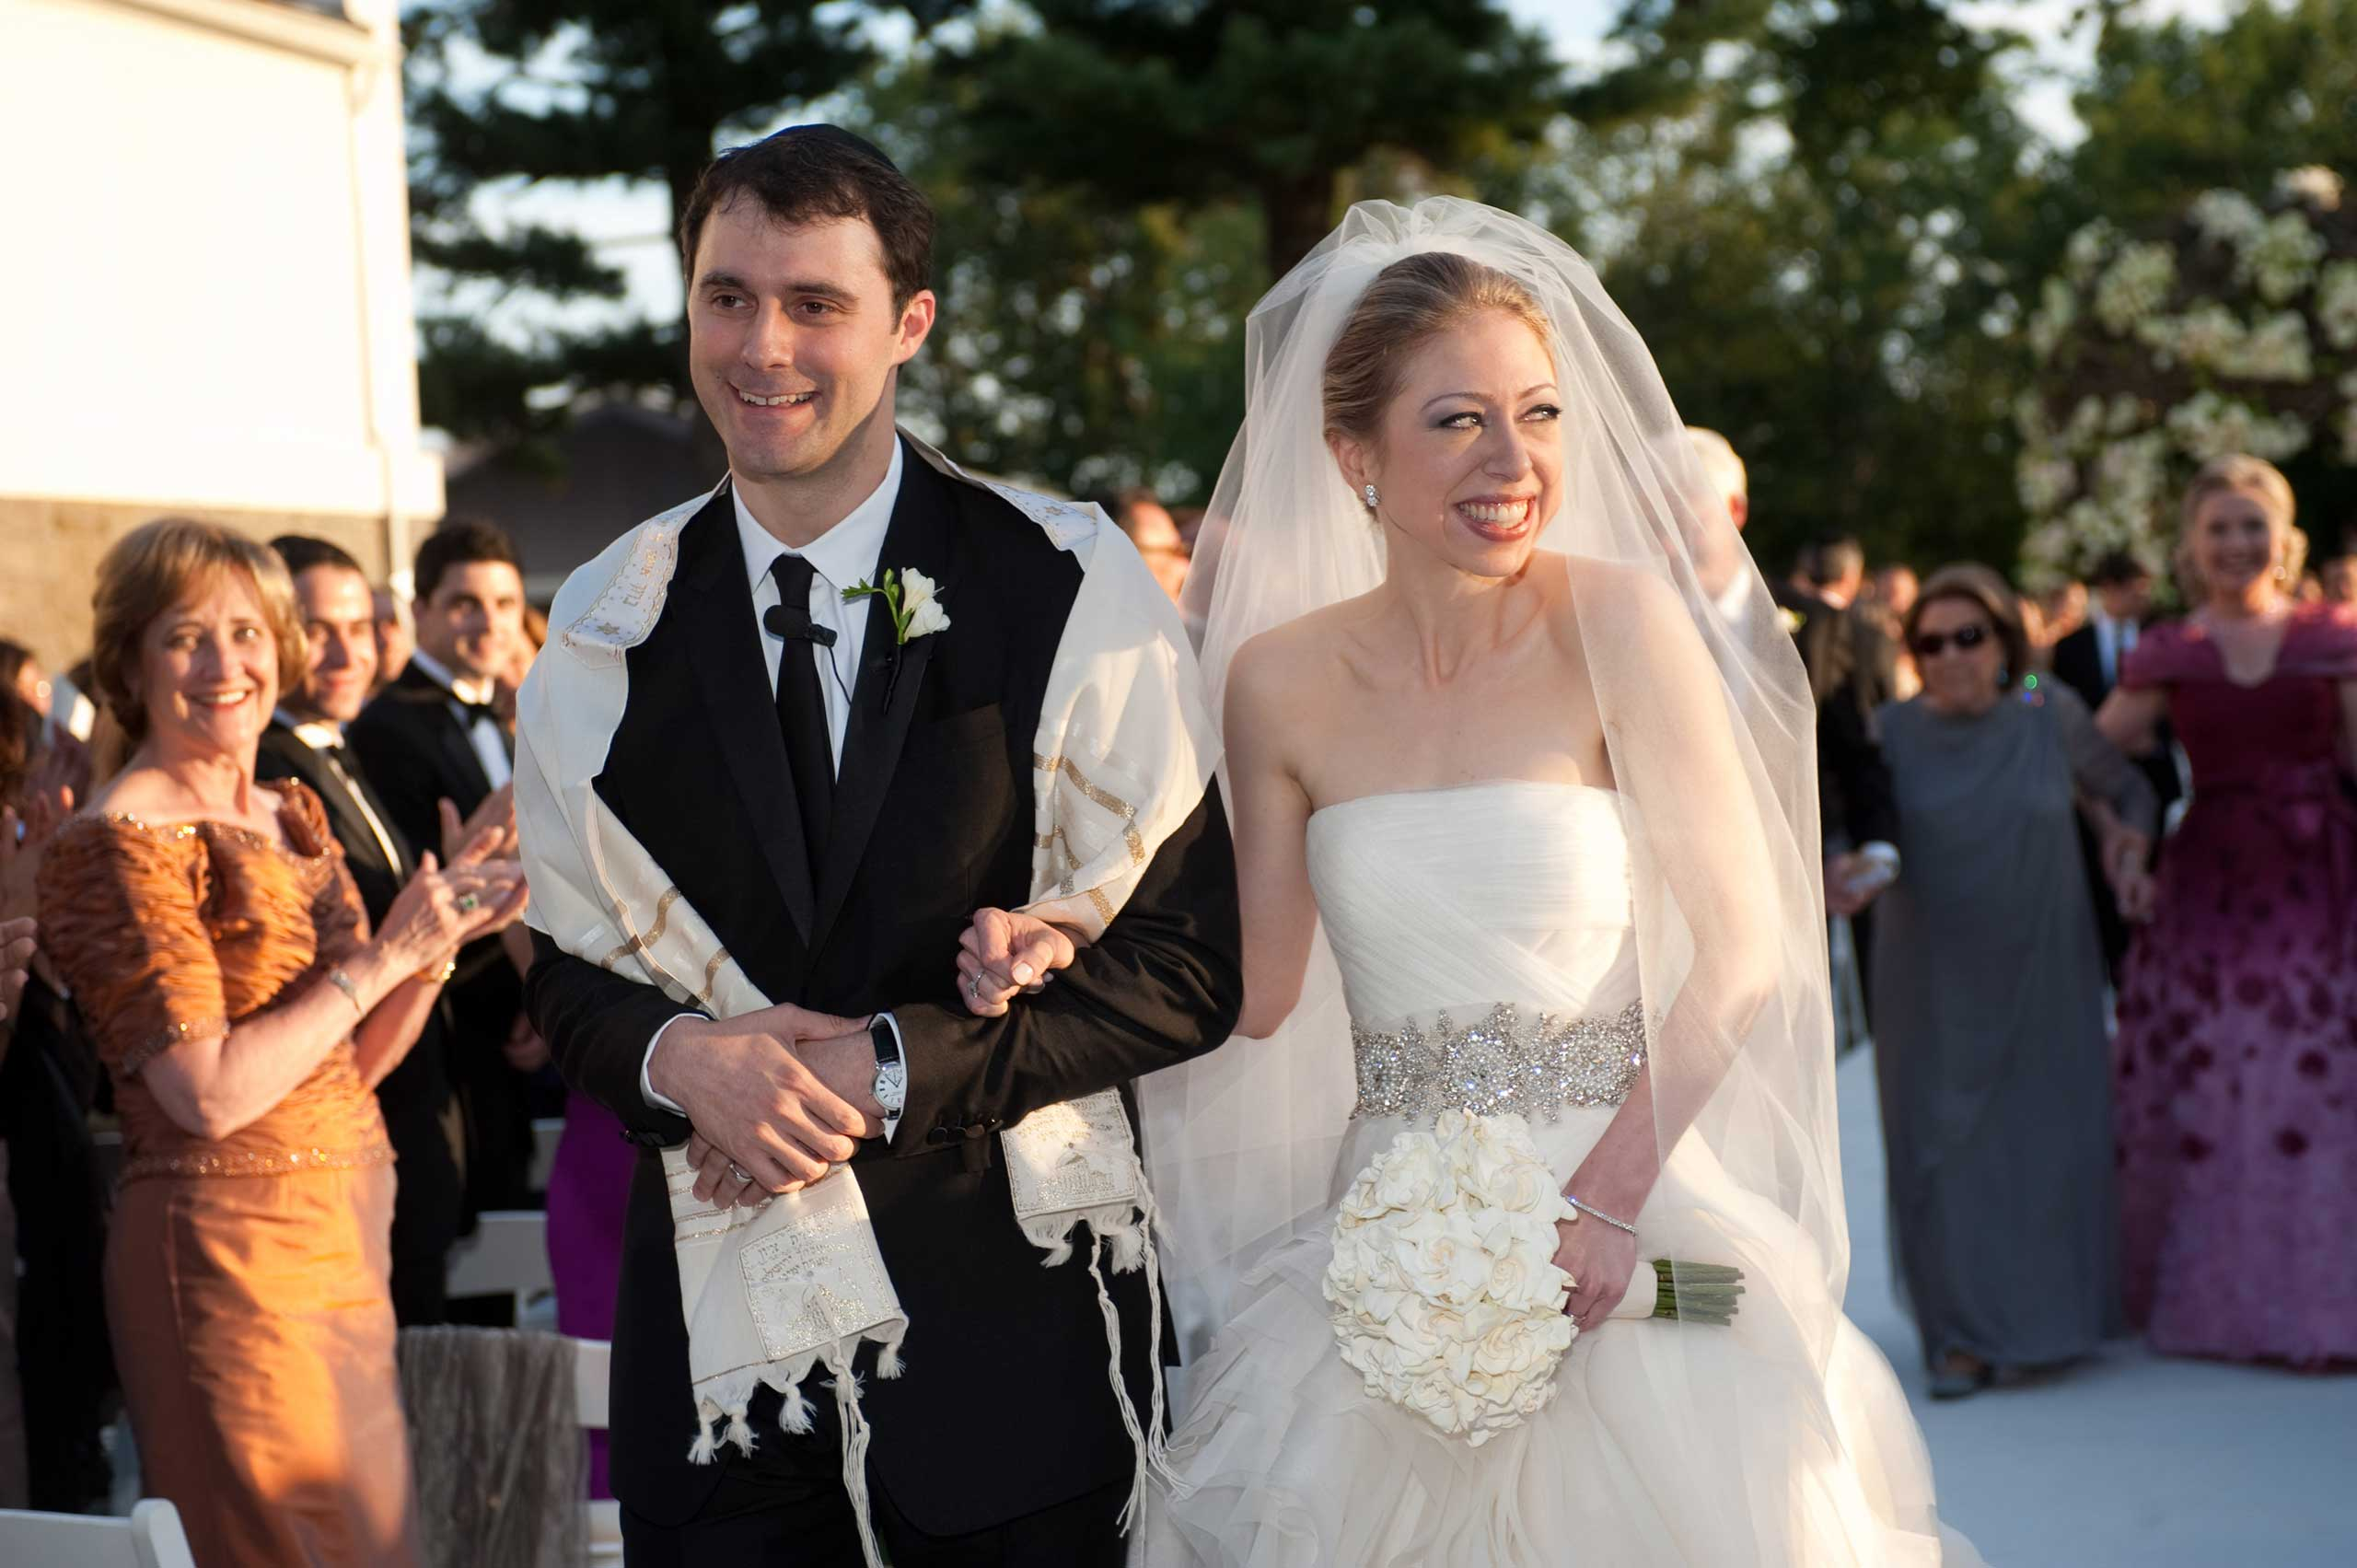 Chelsea Clinton and Marc Mezvinsky are seen during their wedding in Rhinebeck, N.Y. on July 31, 2010.